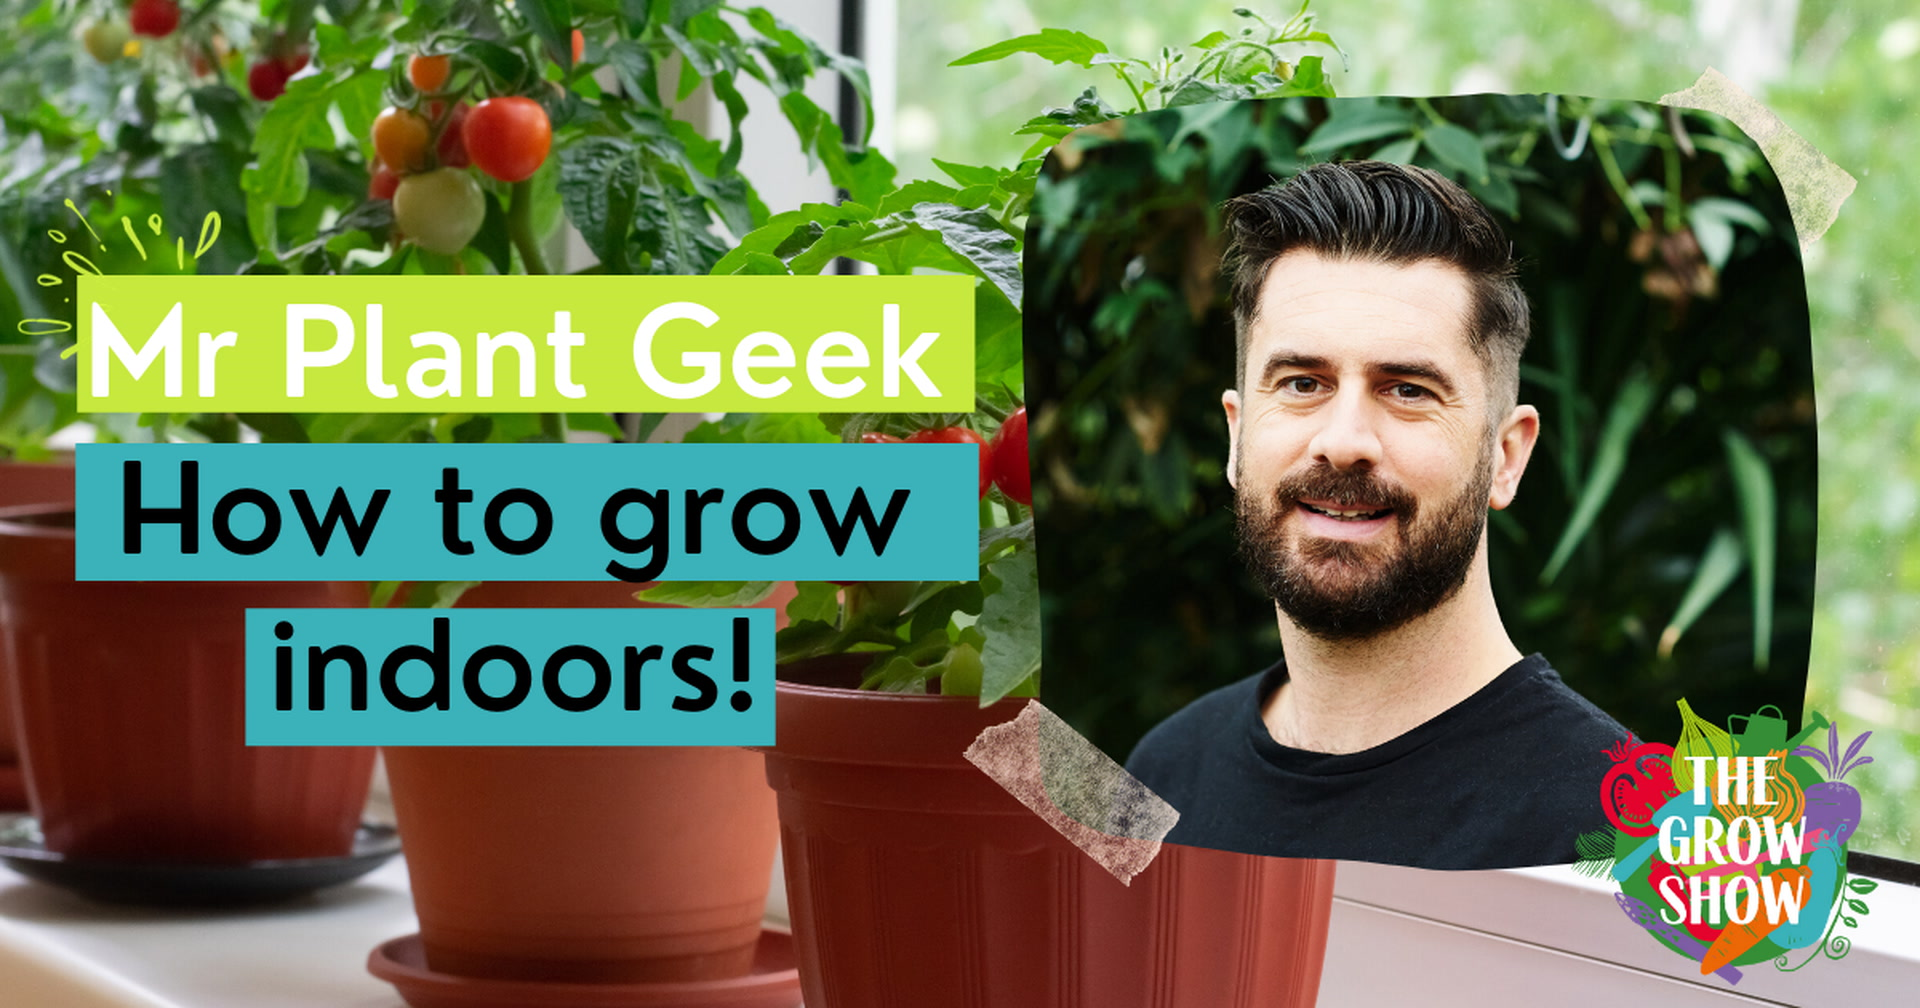 Mr Plant Geek: How to grow indoors